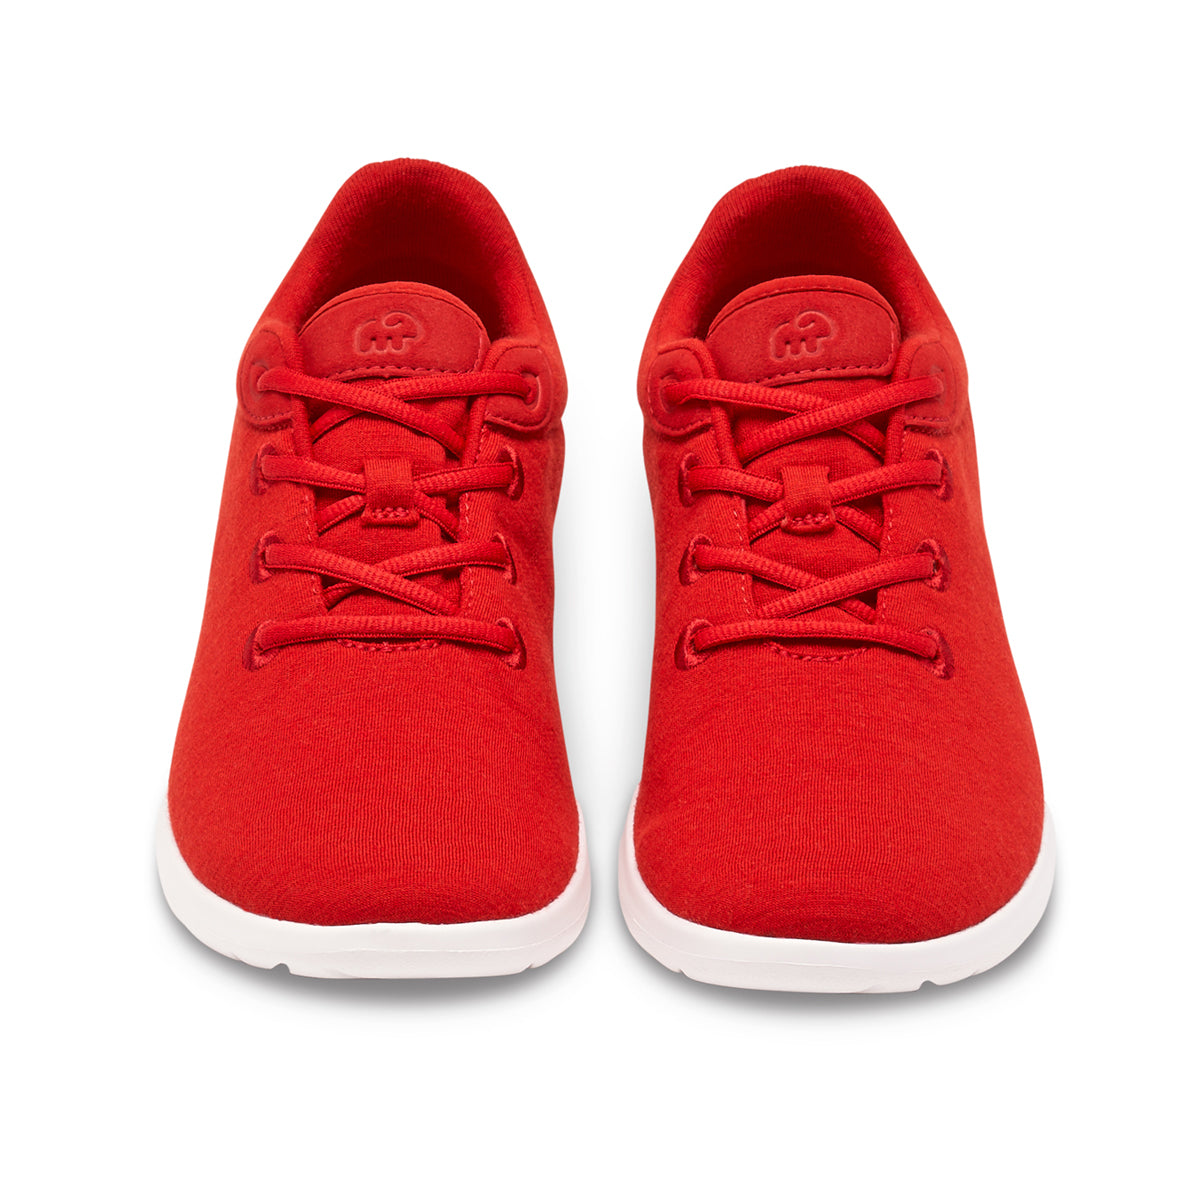 Men's Lace-Ups Red